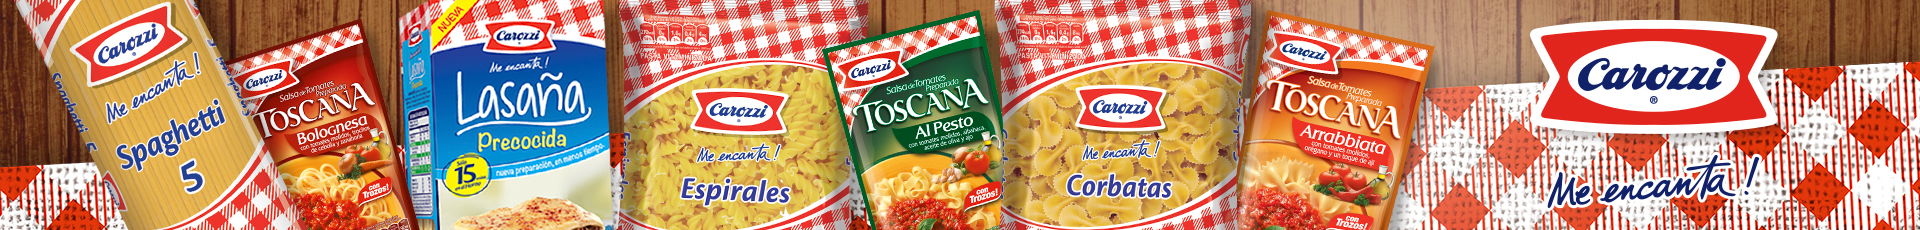 /productos?q=carozzi?utm_source=WEB&utm_medium=banner%20catalogo%20superior&utm_campaign=carozzi